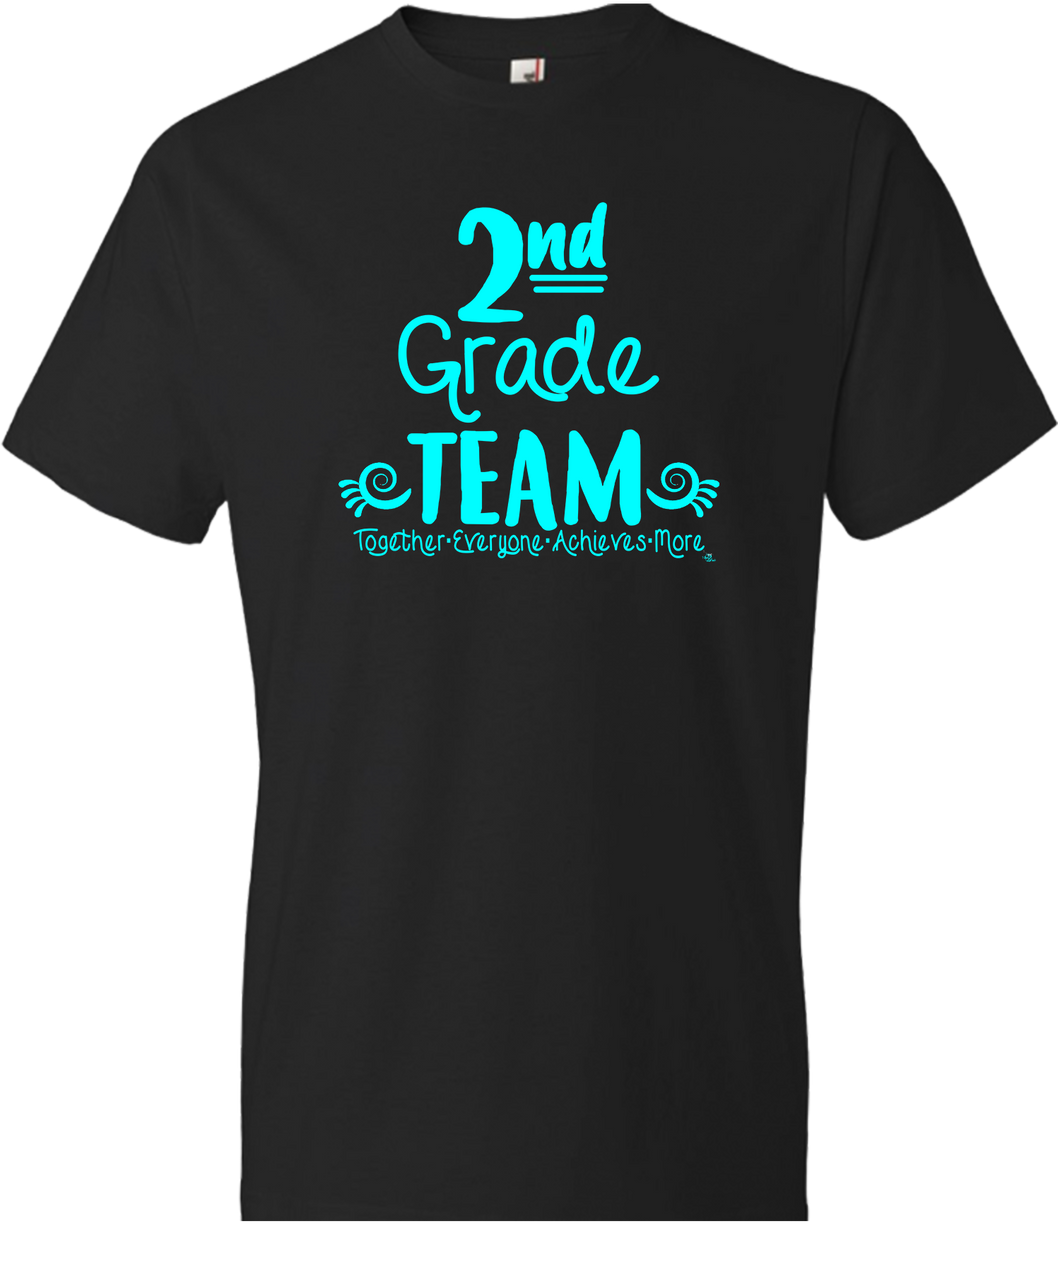 2nd Grade Team Grade Level Tee